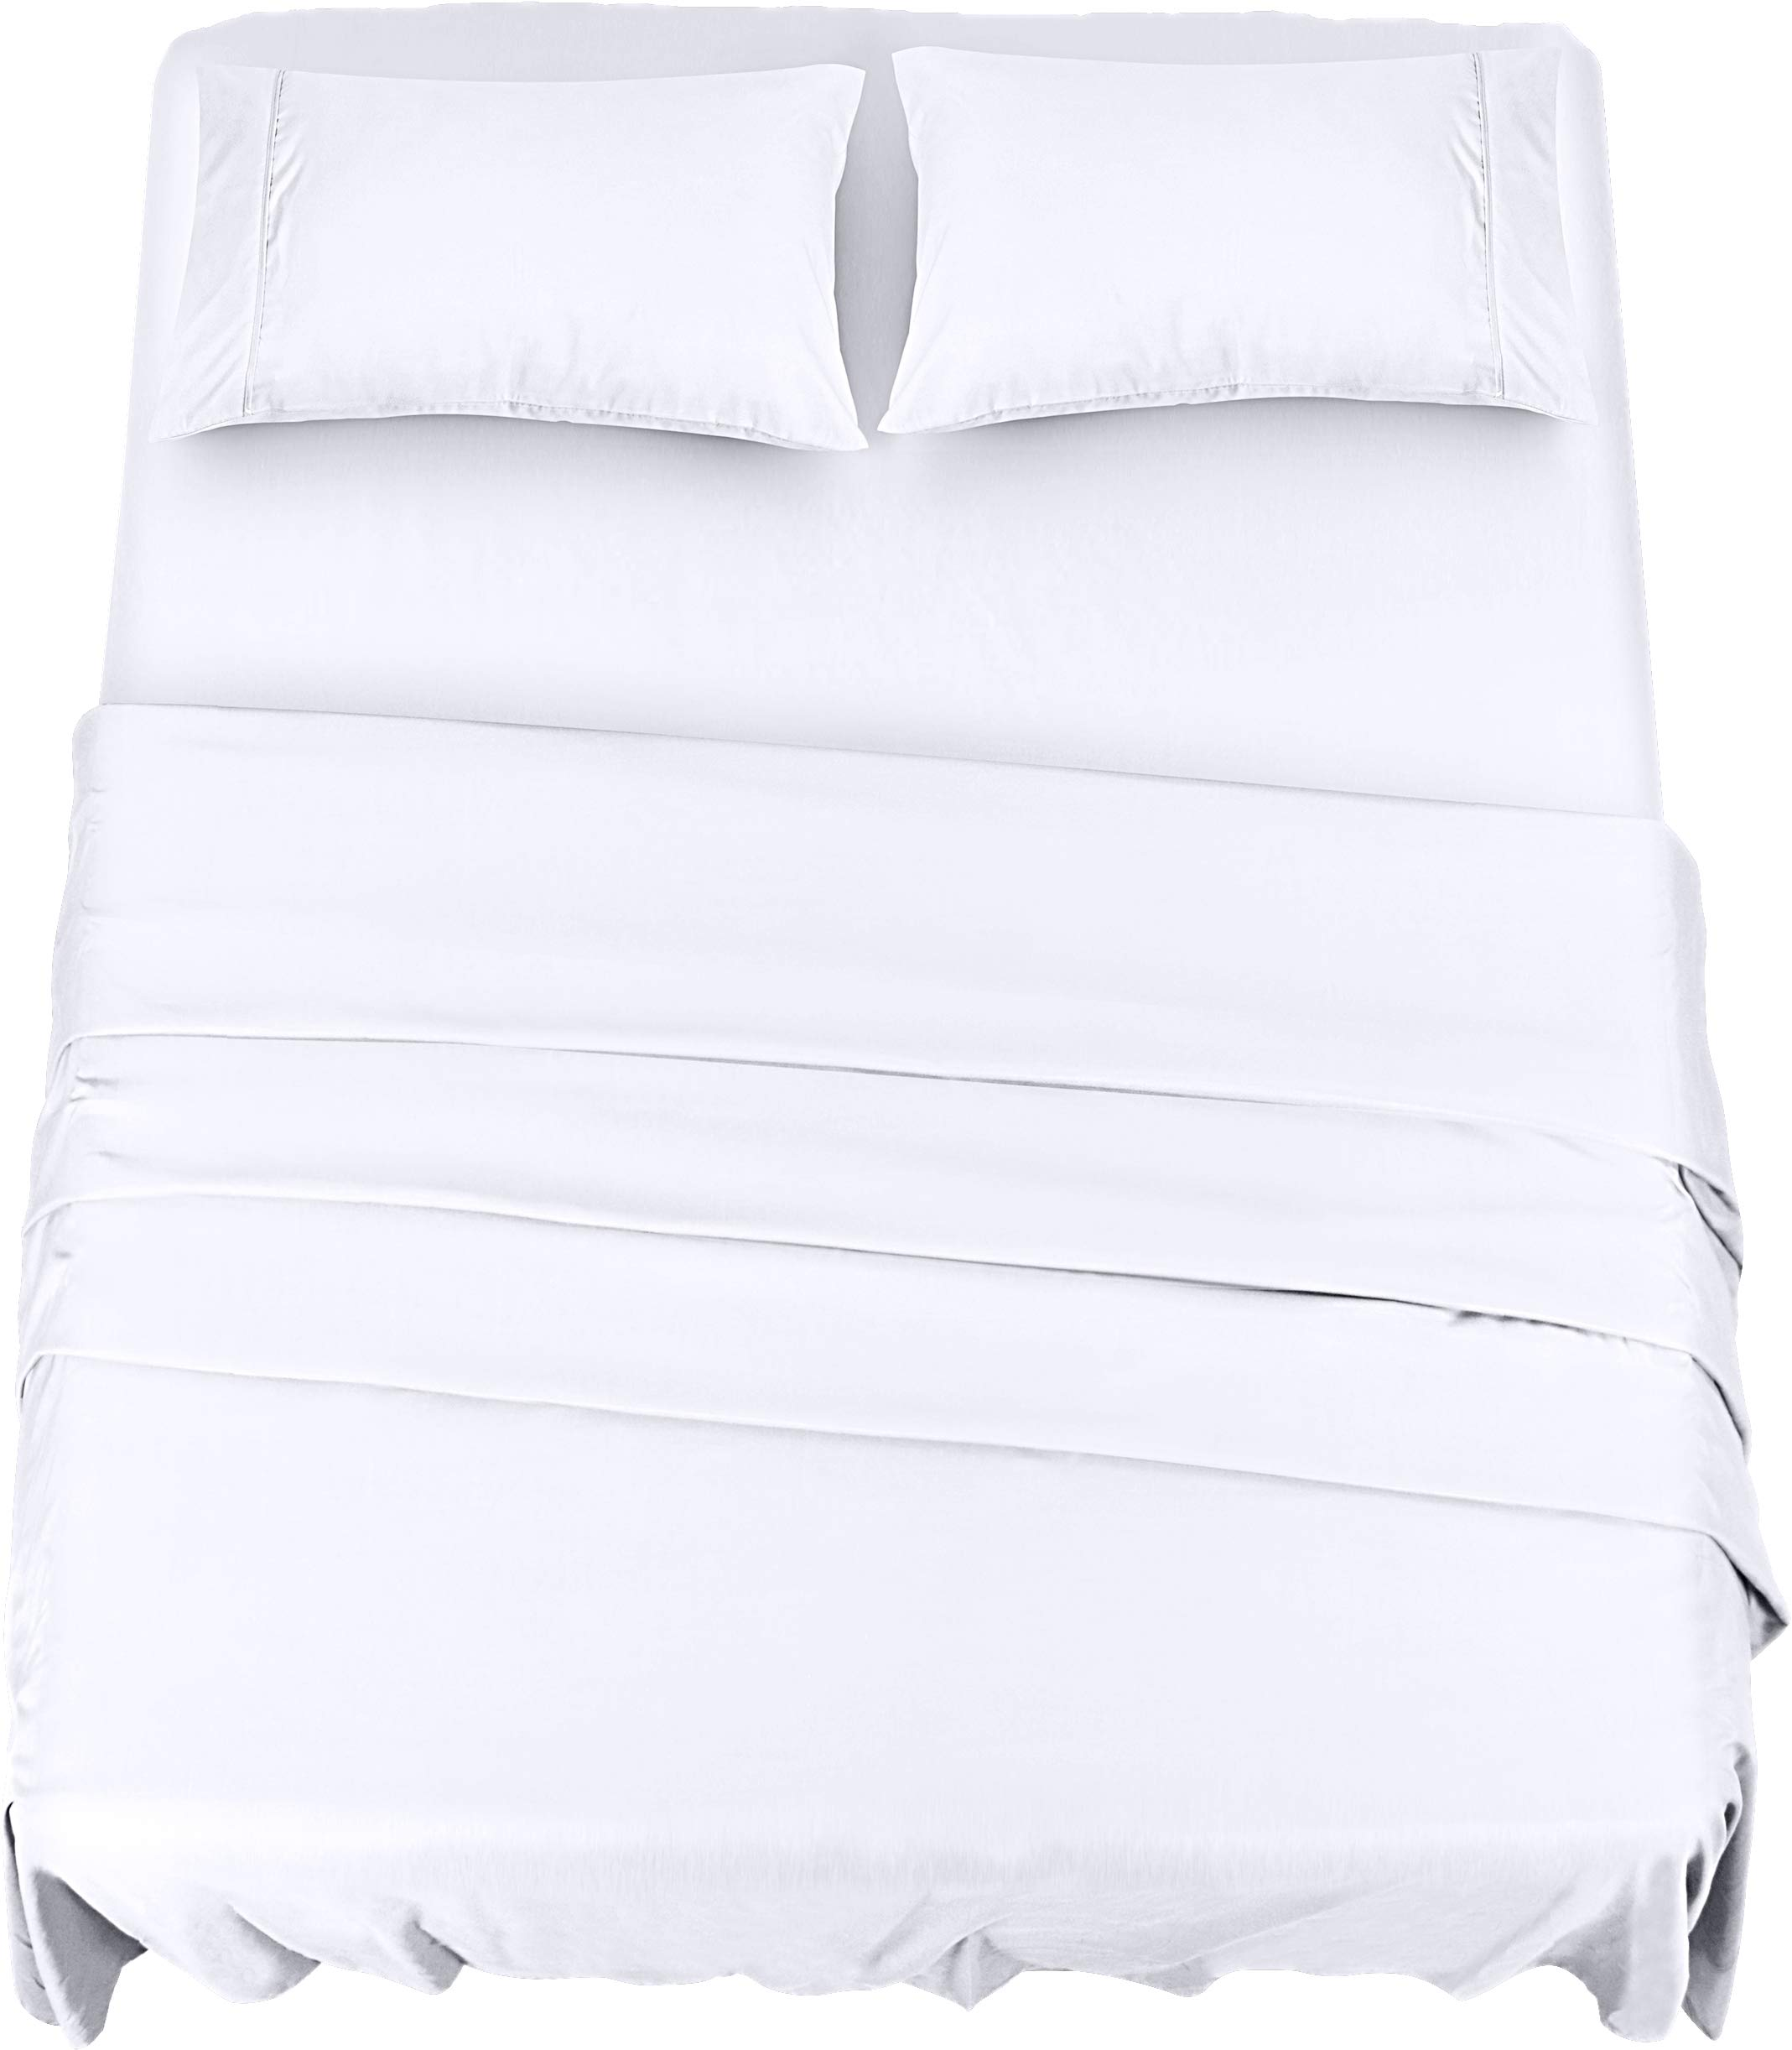 Utopia Bedding Bed Sheet Set - 4 Piece King Bedding - Soft Brushed Microfiber Fabric - Shrinkage & Fade Resistant - Easy Care (King, White)